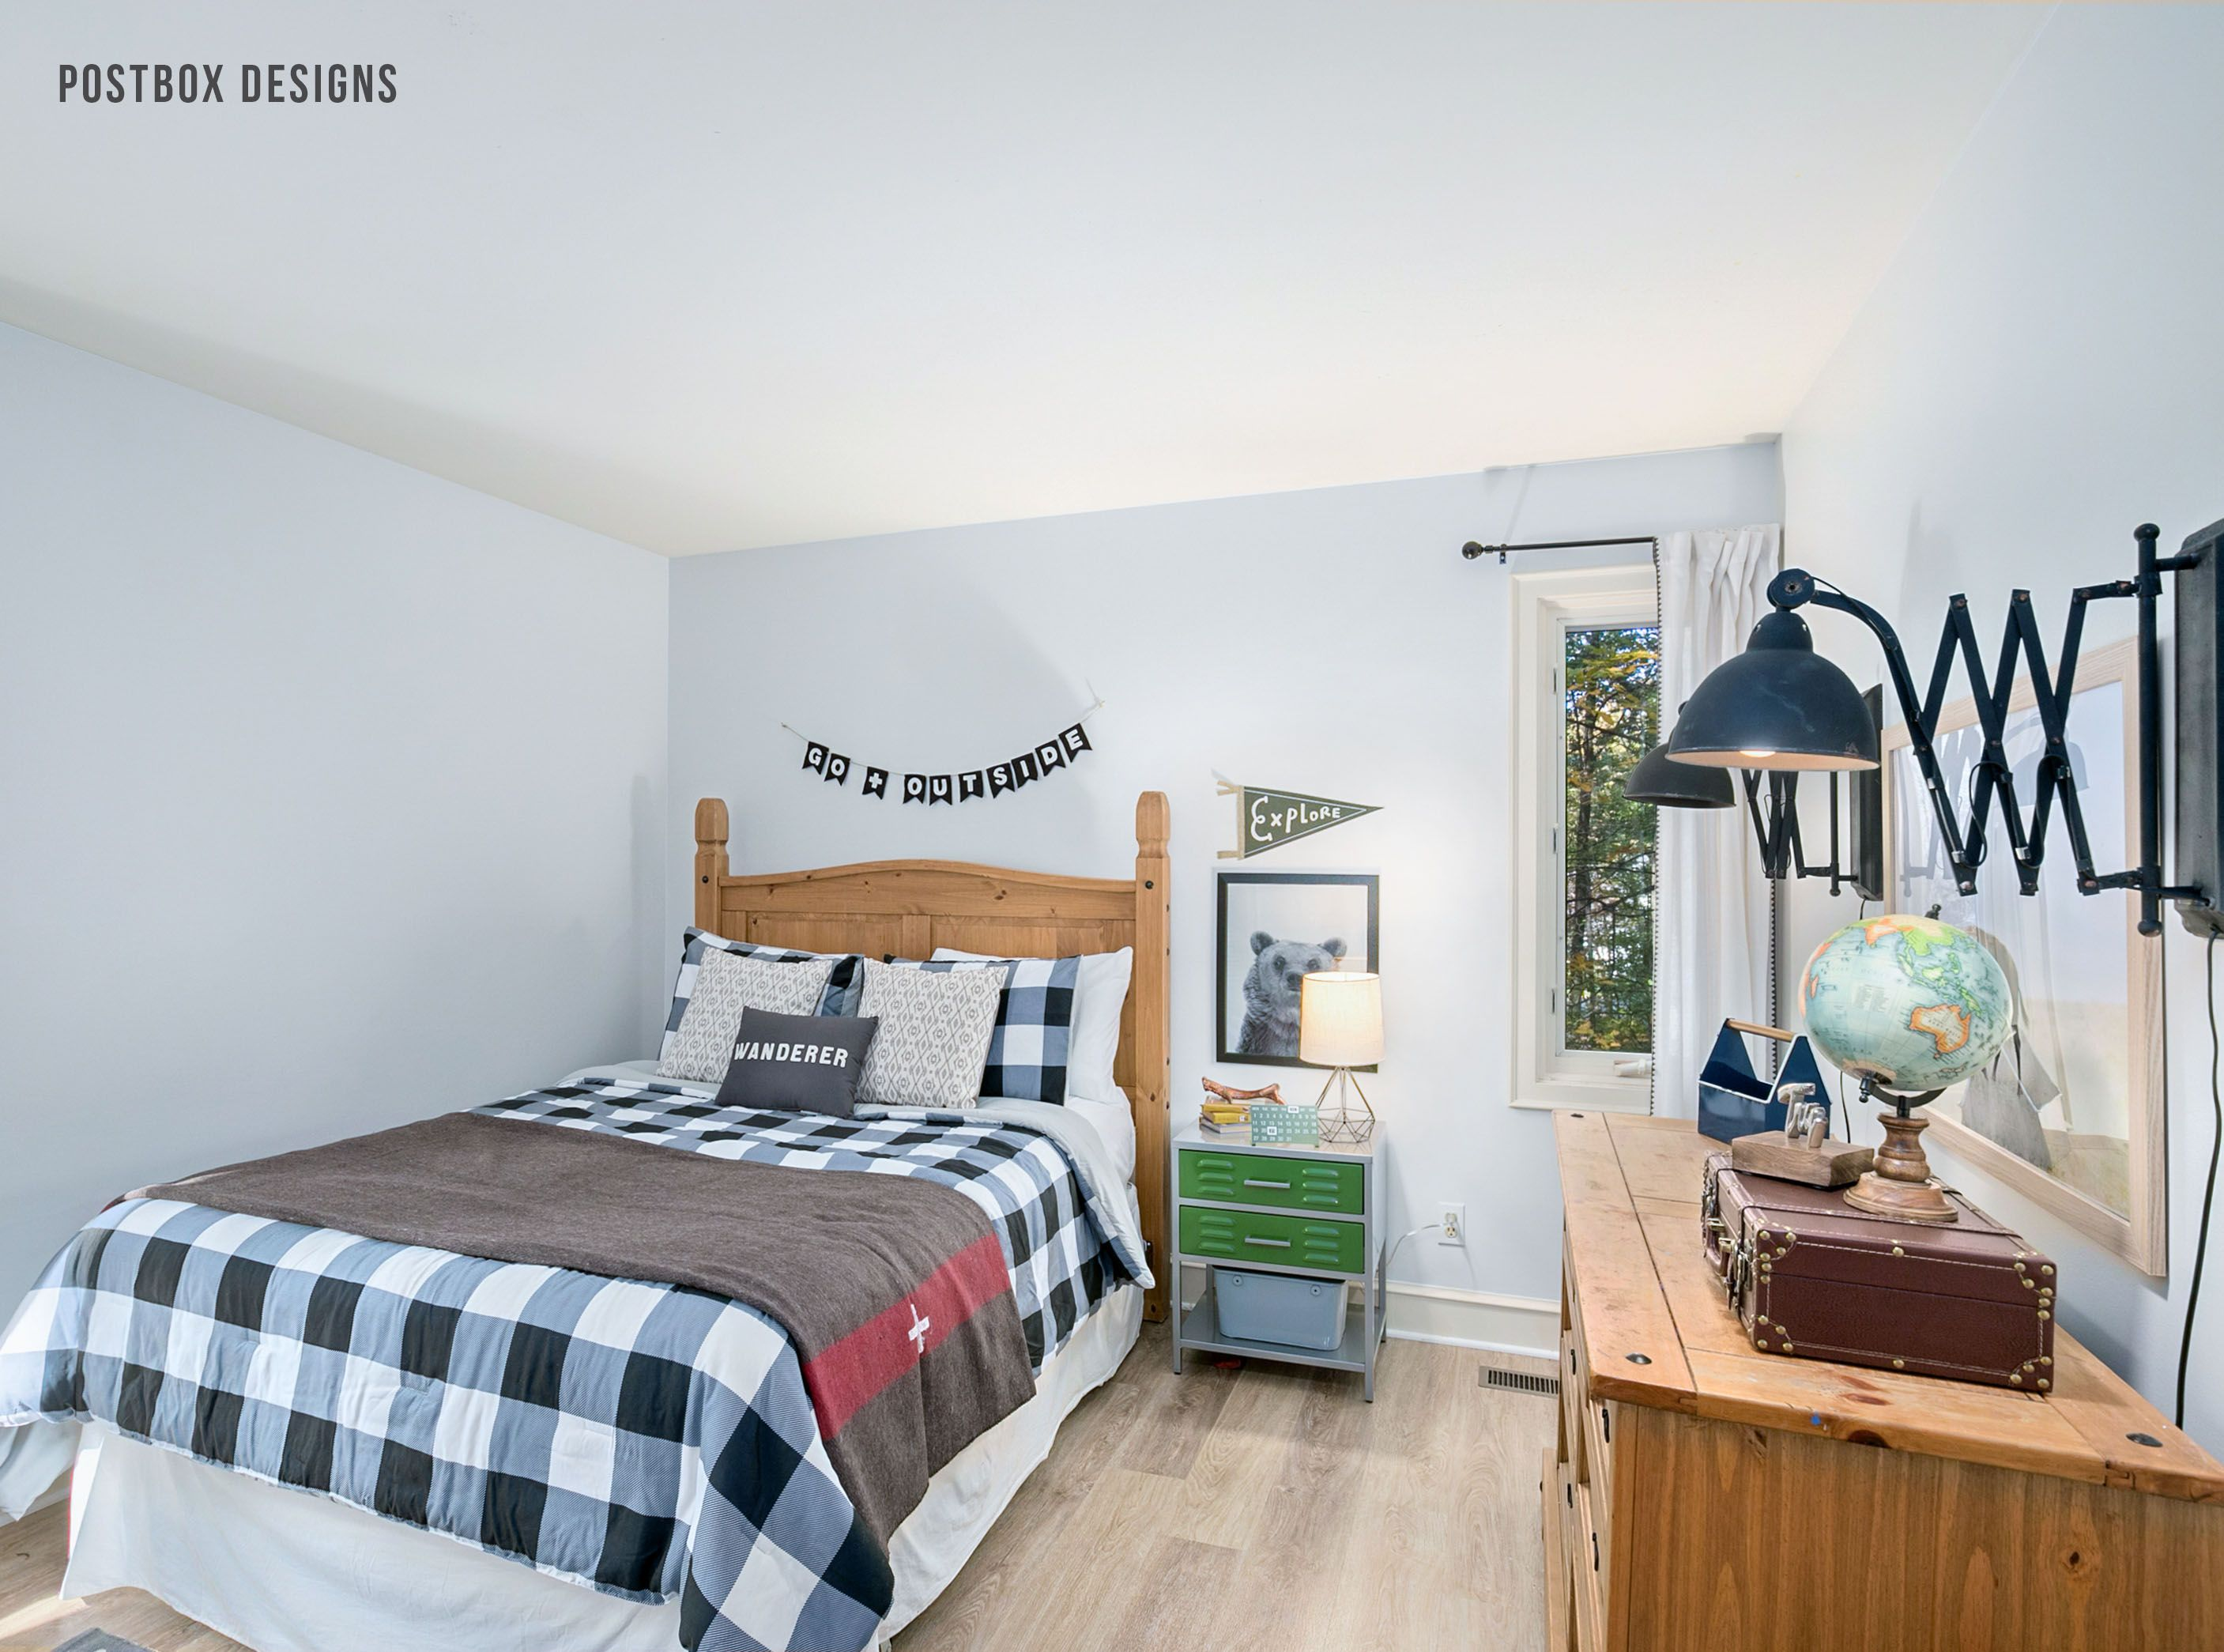 Outdoor Adventure Themed Room Themed Kids Room Camping Theme Room Adventure Room